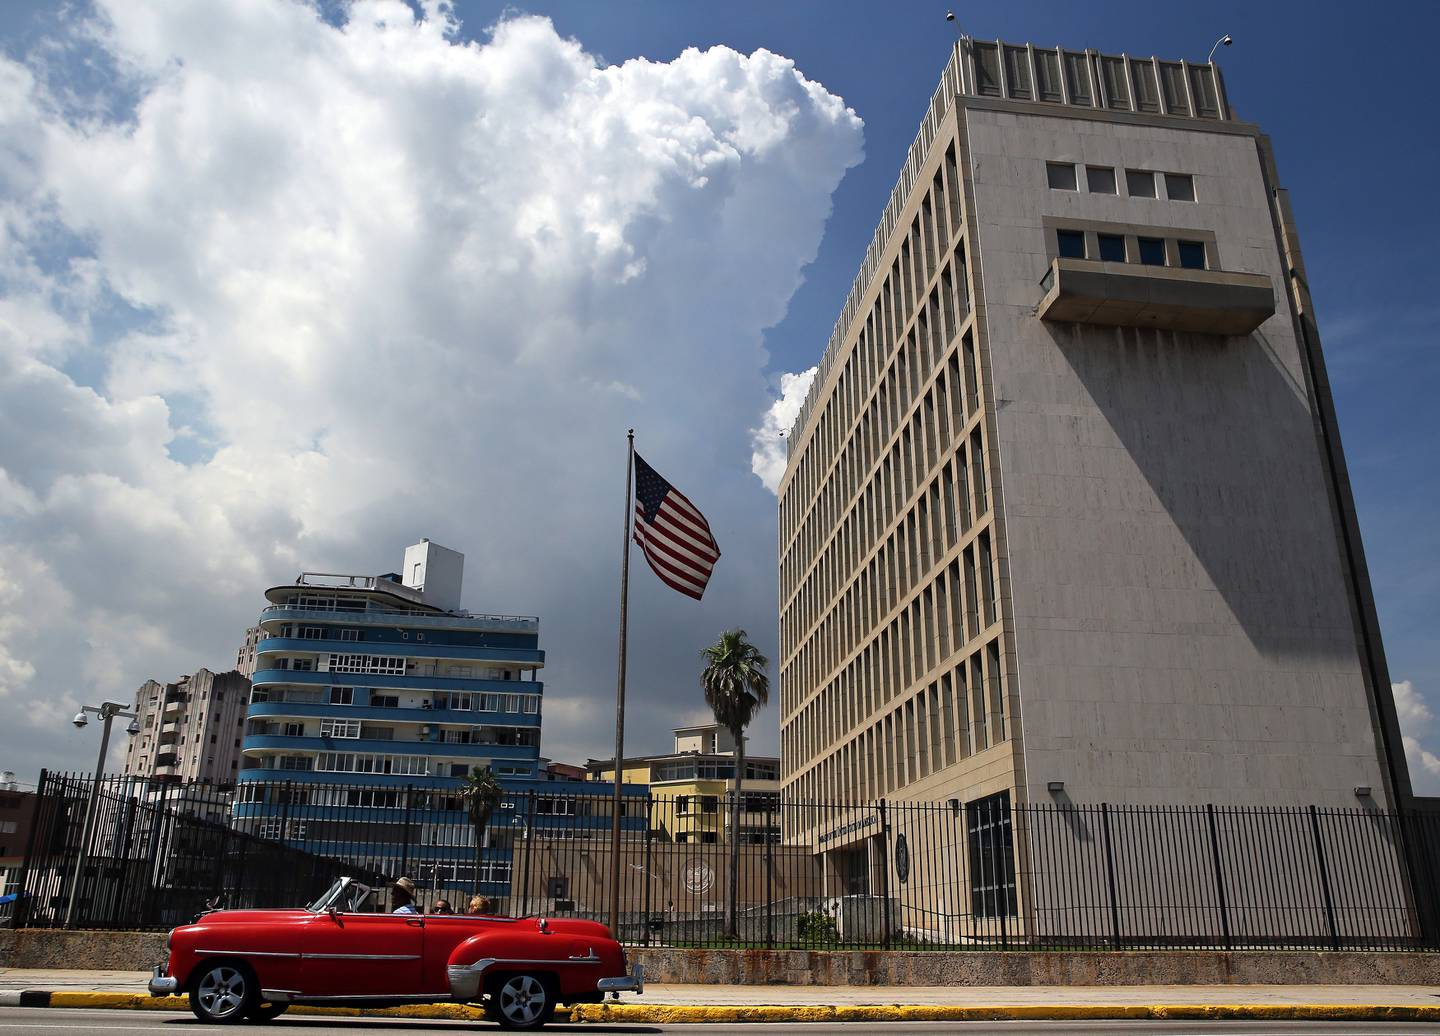 epa06134953 (FILE) - A classic car passes in front of the US embassy in Havana, Cuba, 16 June 2017 (reissued 10 August 2017). Media outlets report that the US State Department has expelled two diplomats from the Cuban Embassy in Washington, following an alleged 'acoustic attack' on employees at the US embassy in Havana. Sonic devices were reportedly used in the attack that left at least two with serious health problems.  EPA/Alejandro Ernesto